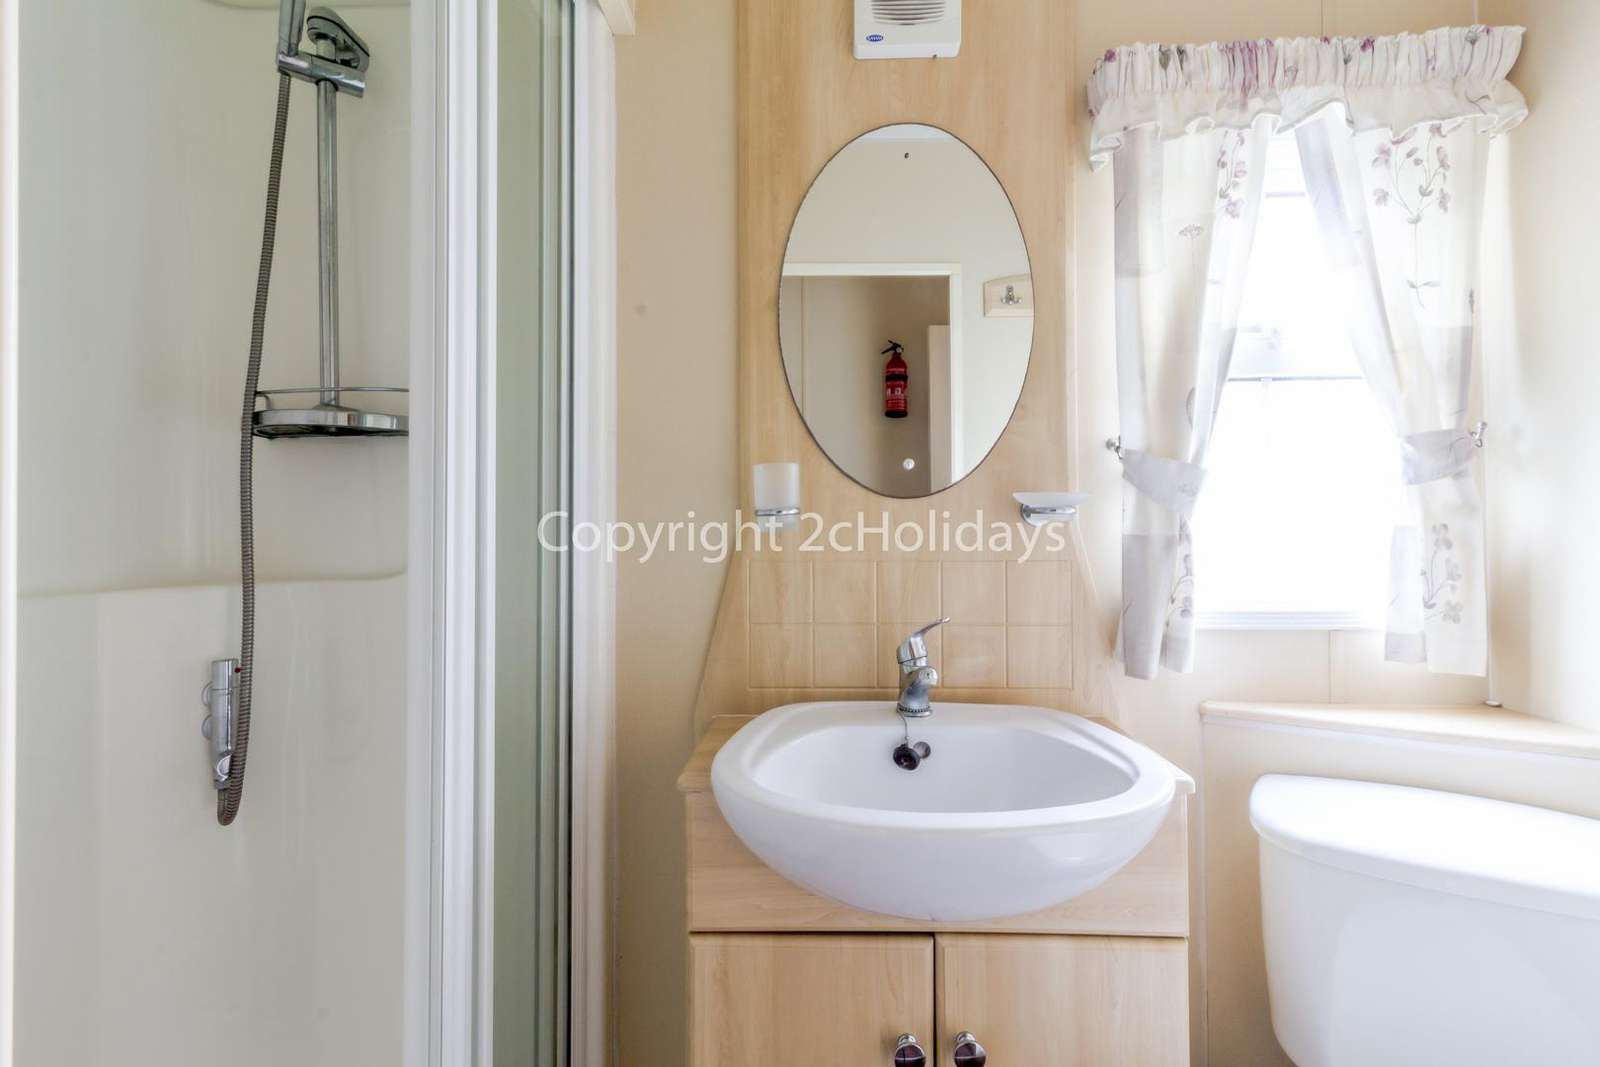 We ensure that all our holiday homes are cleaned to a high standard!